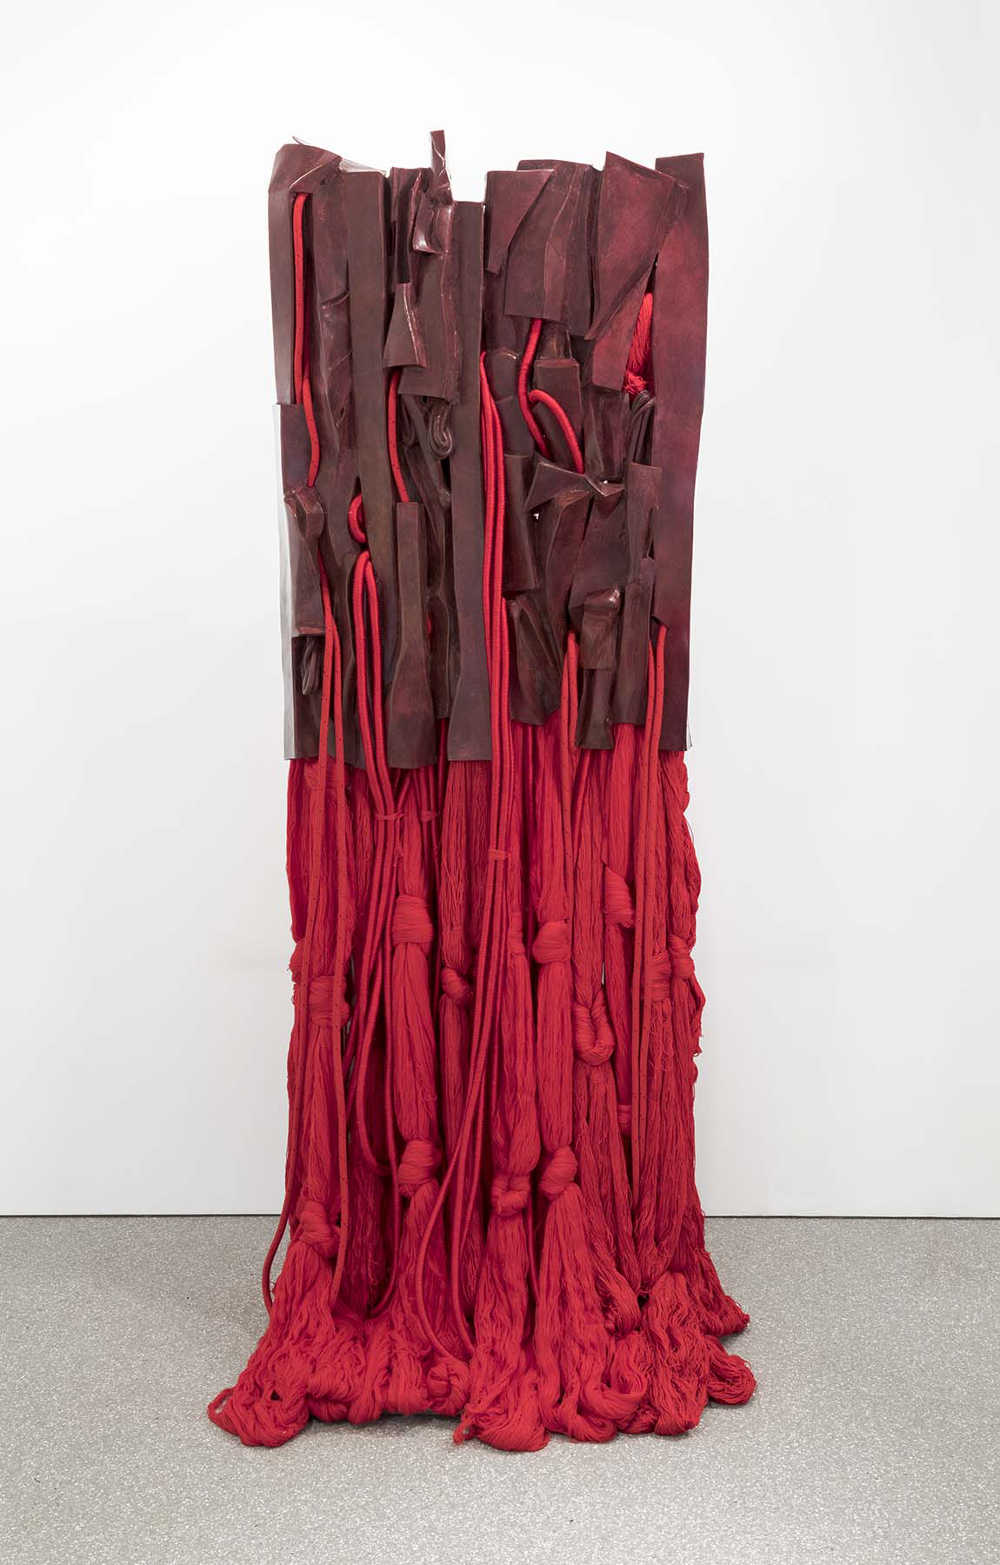 Barbara Chase-Riboud (b.1939), Malcolm X #16, 2016. Red patina bronze and silk 92